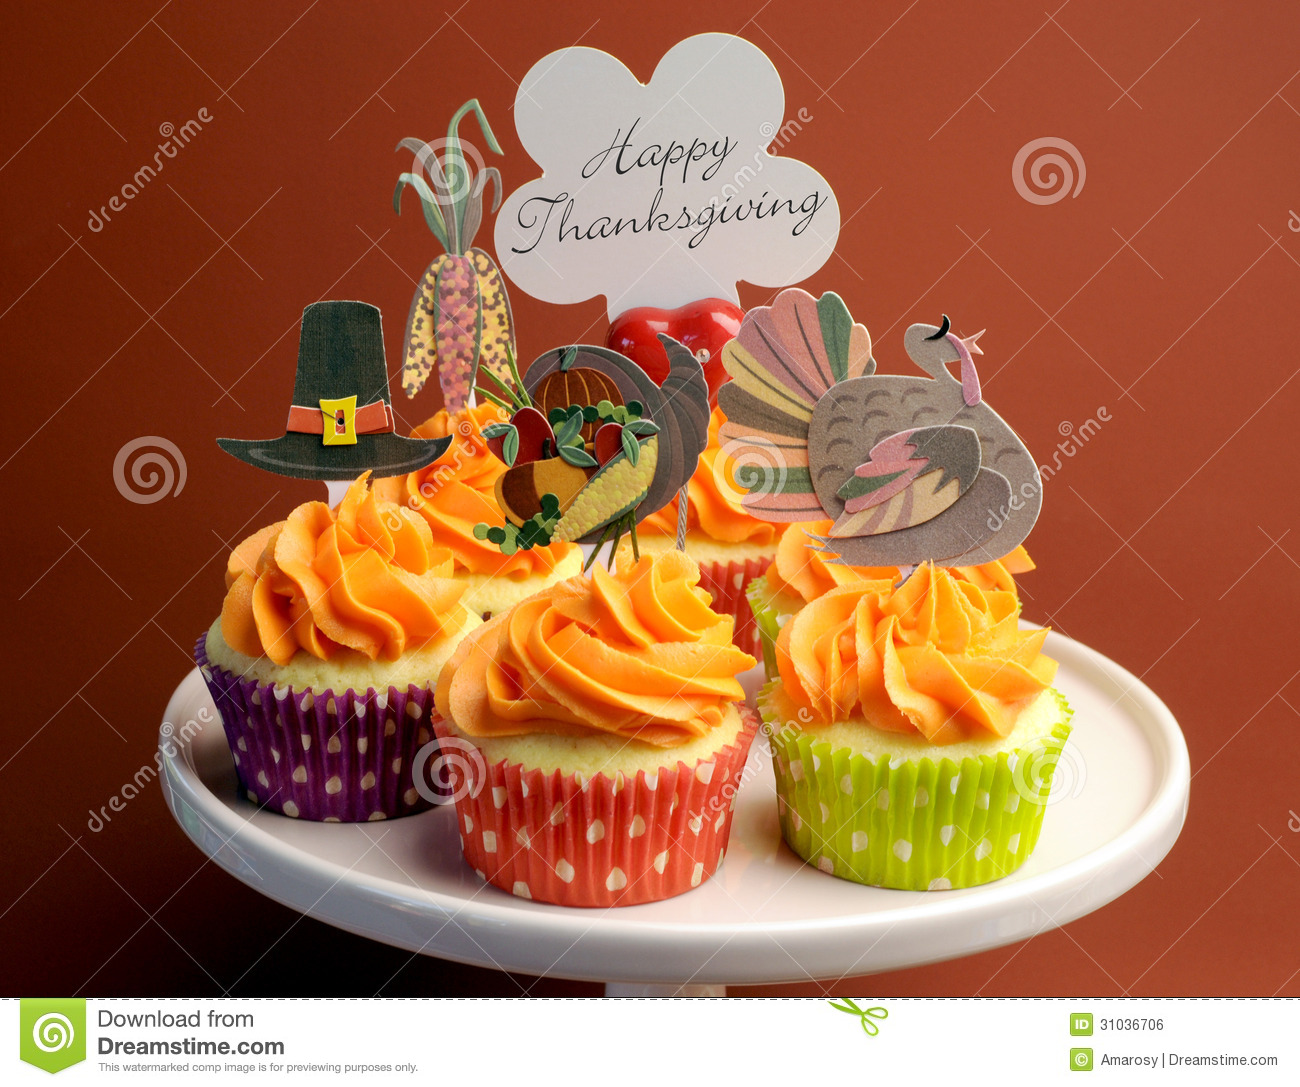 Thanksgiving cupcake decorations - Royalty Free Stock Photo Download Happy Thanksgiving Decorated Cupcakes